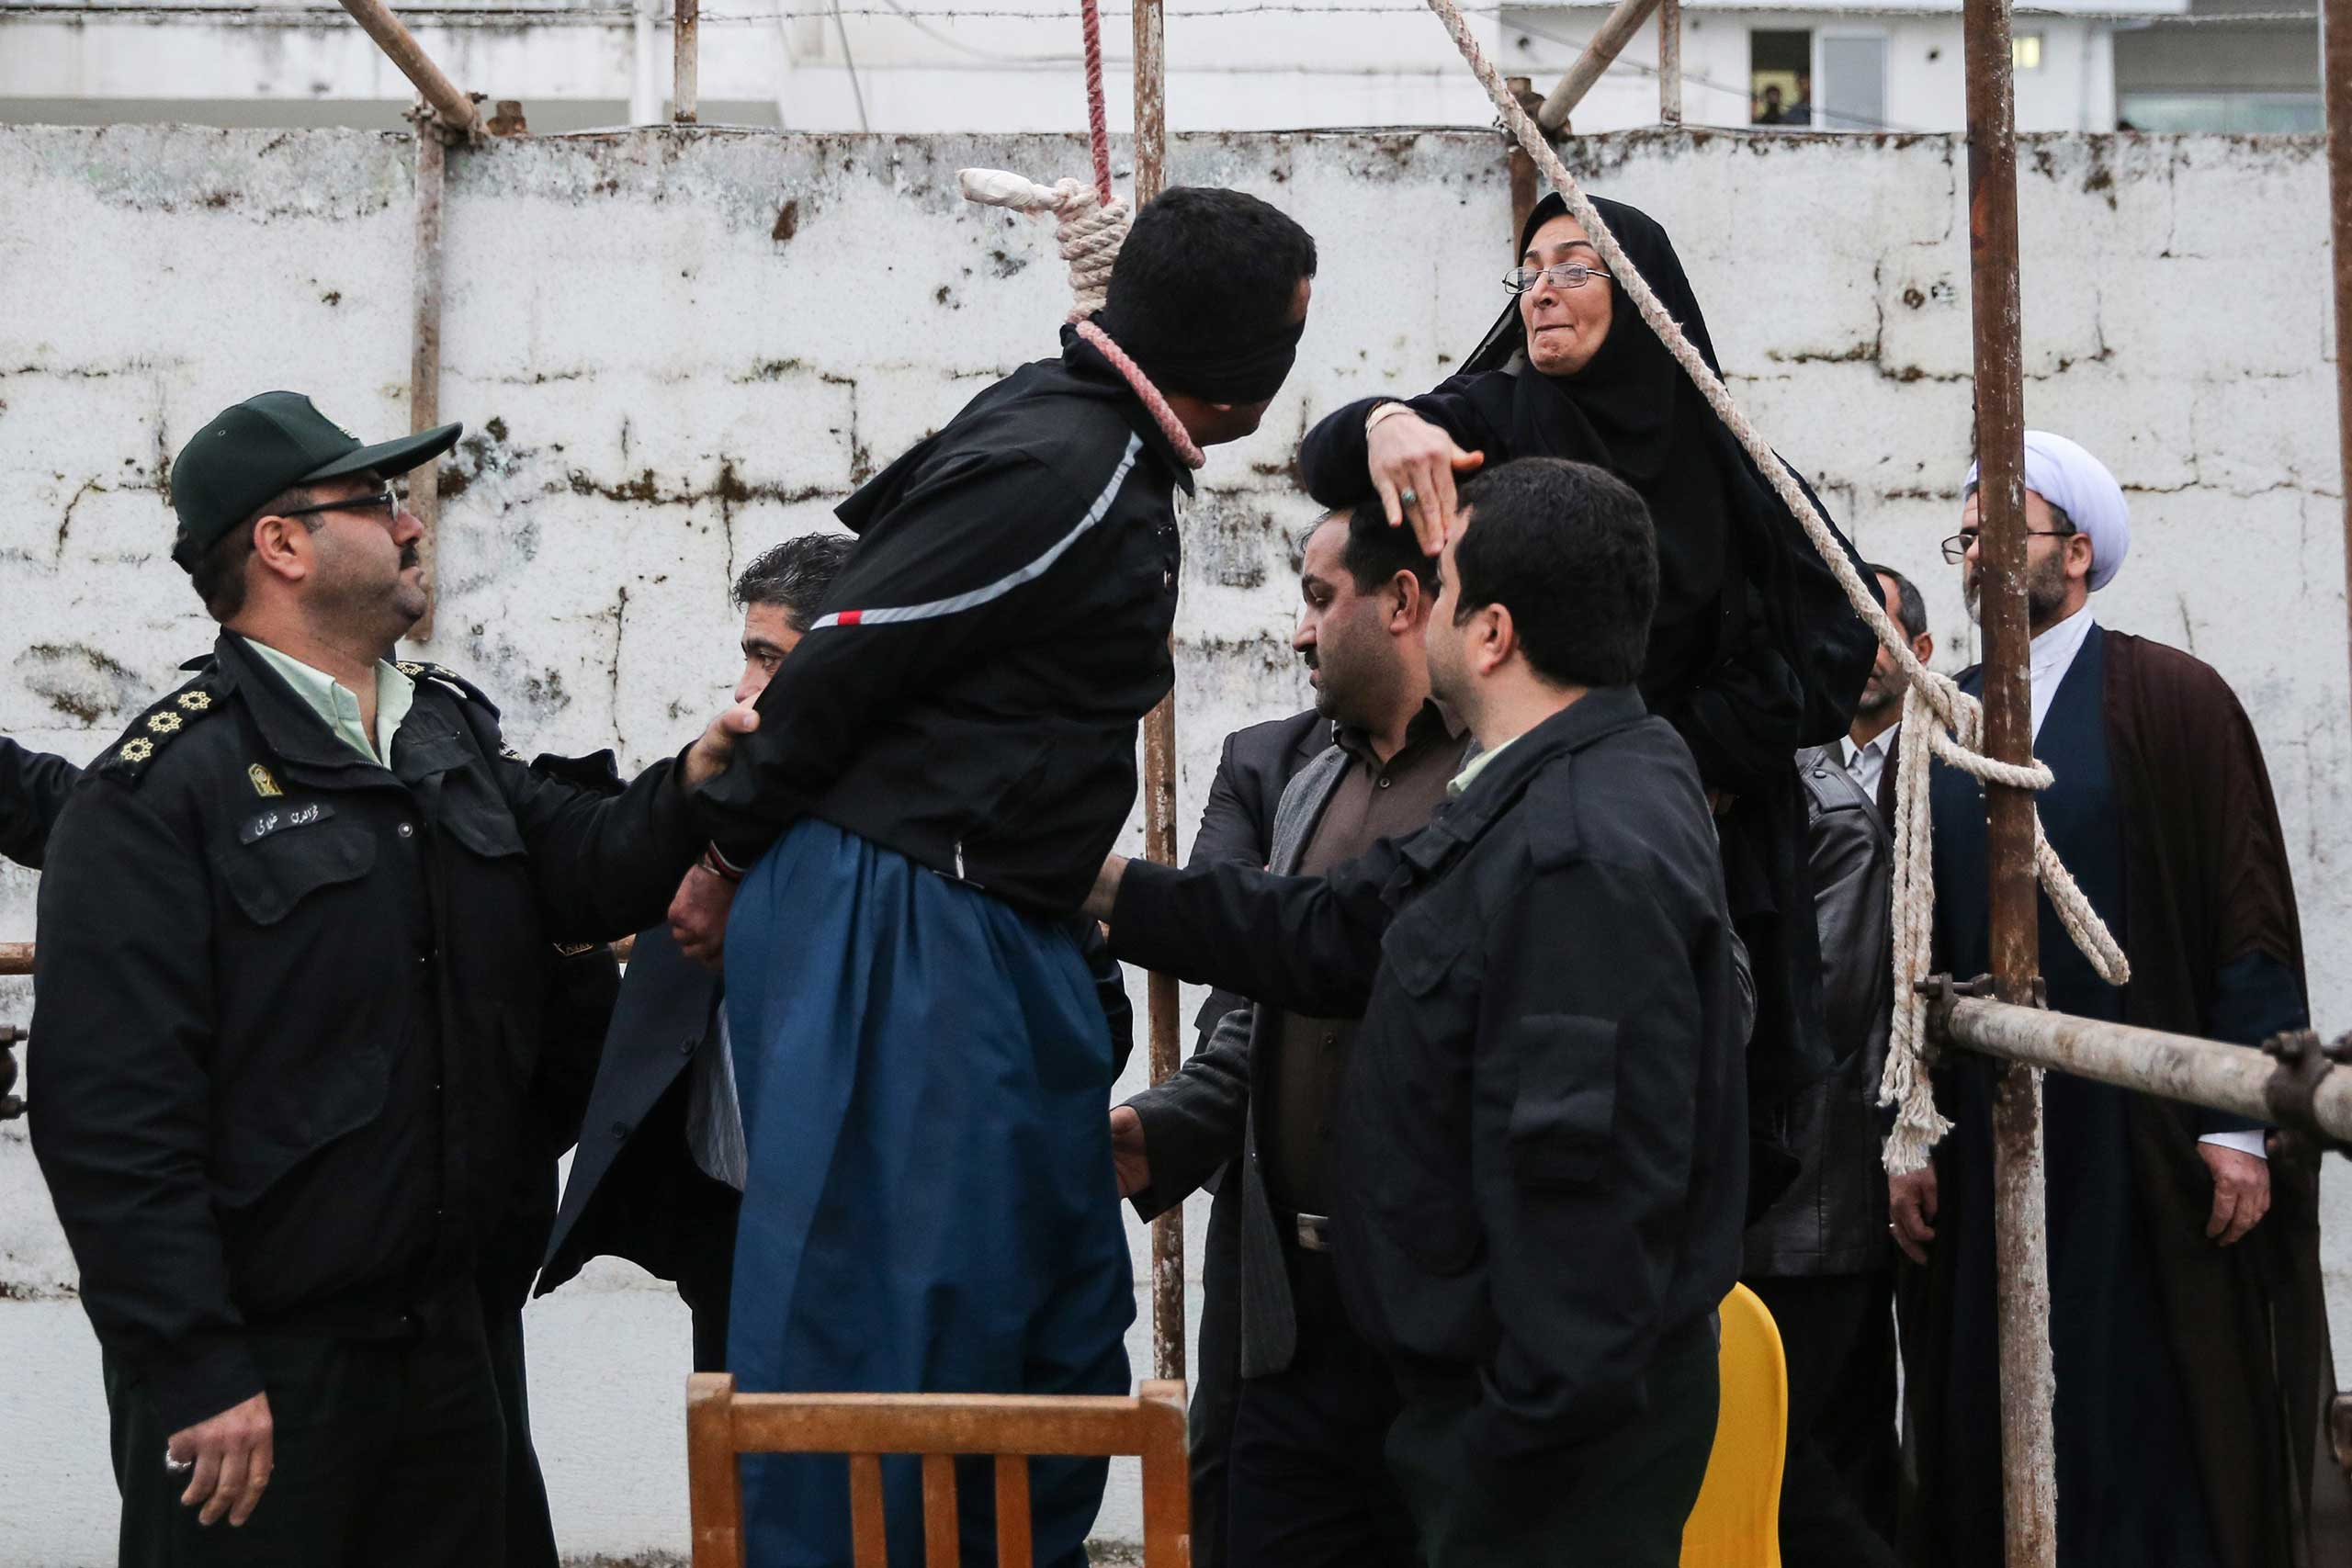 The mother of Abdolah Hosseinzadeh, who was murdered in 2007, slaps Balal who killed her son during the execution ceremony in the northern city of Nowshahr just before she removed the noose around his neck with the help of her husband, sparing the life of her son's convicted murderer, April 15, 2014.